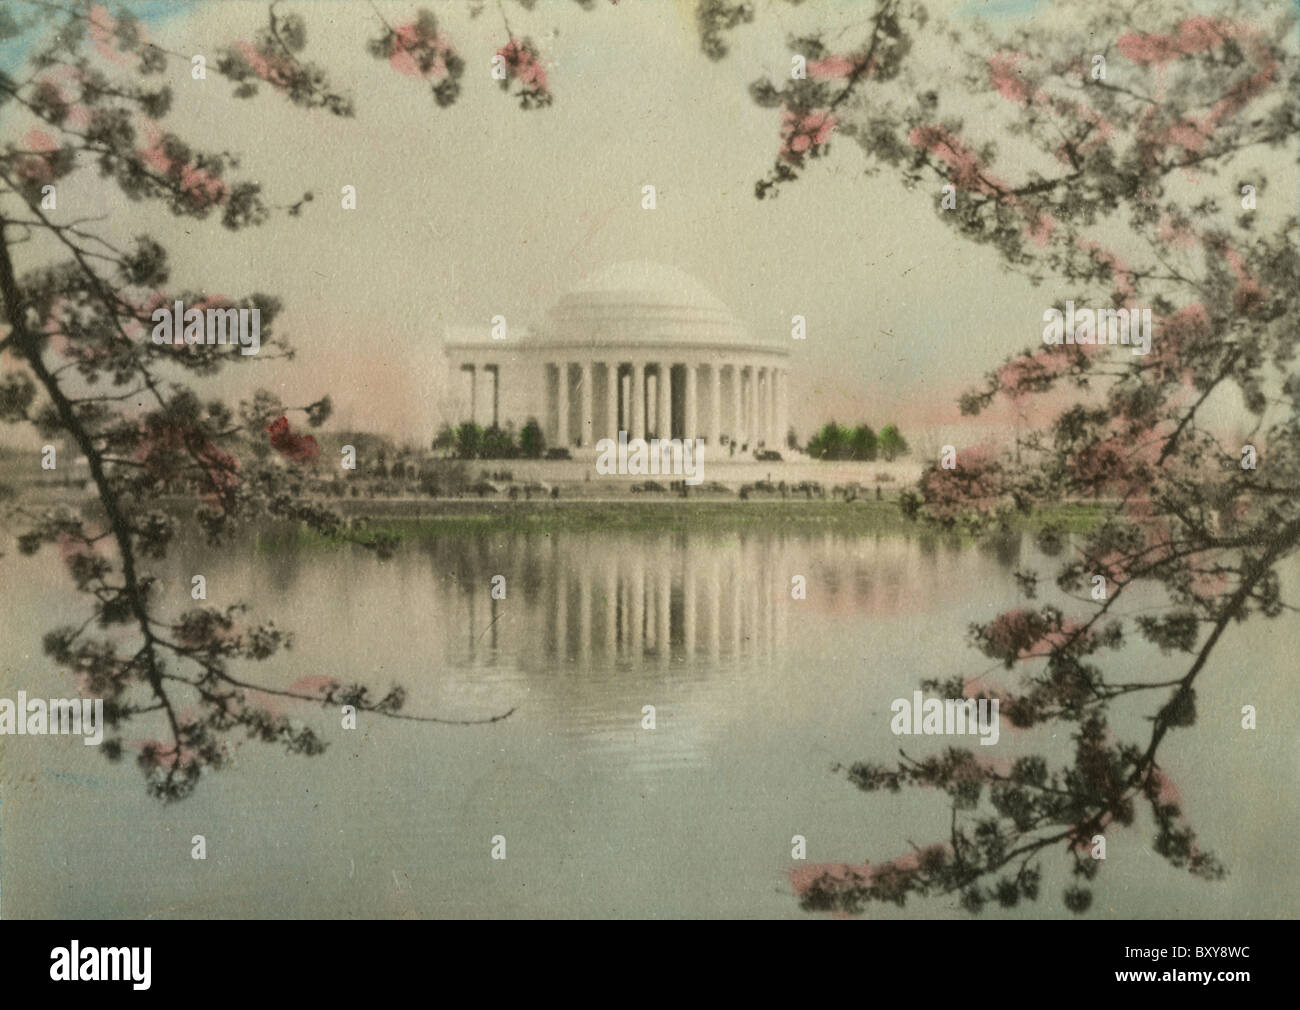 Circa 1910s hand-tinted photograph of the Jefferson Memorial and cherry blossoms, Washington DC, USA. - Stock Image